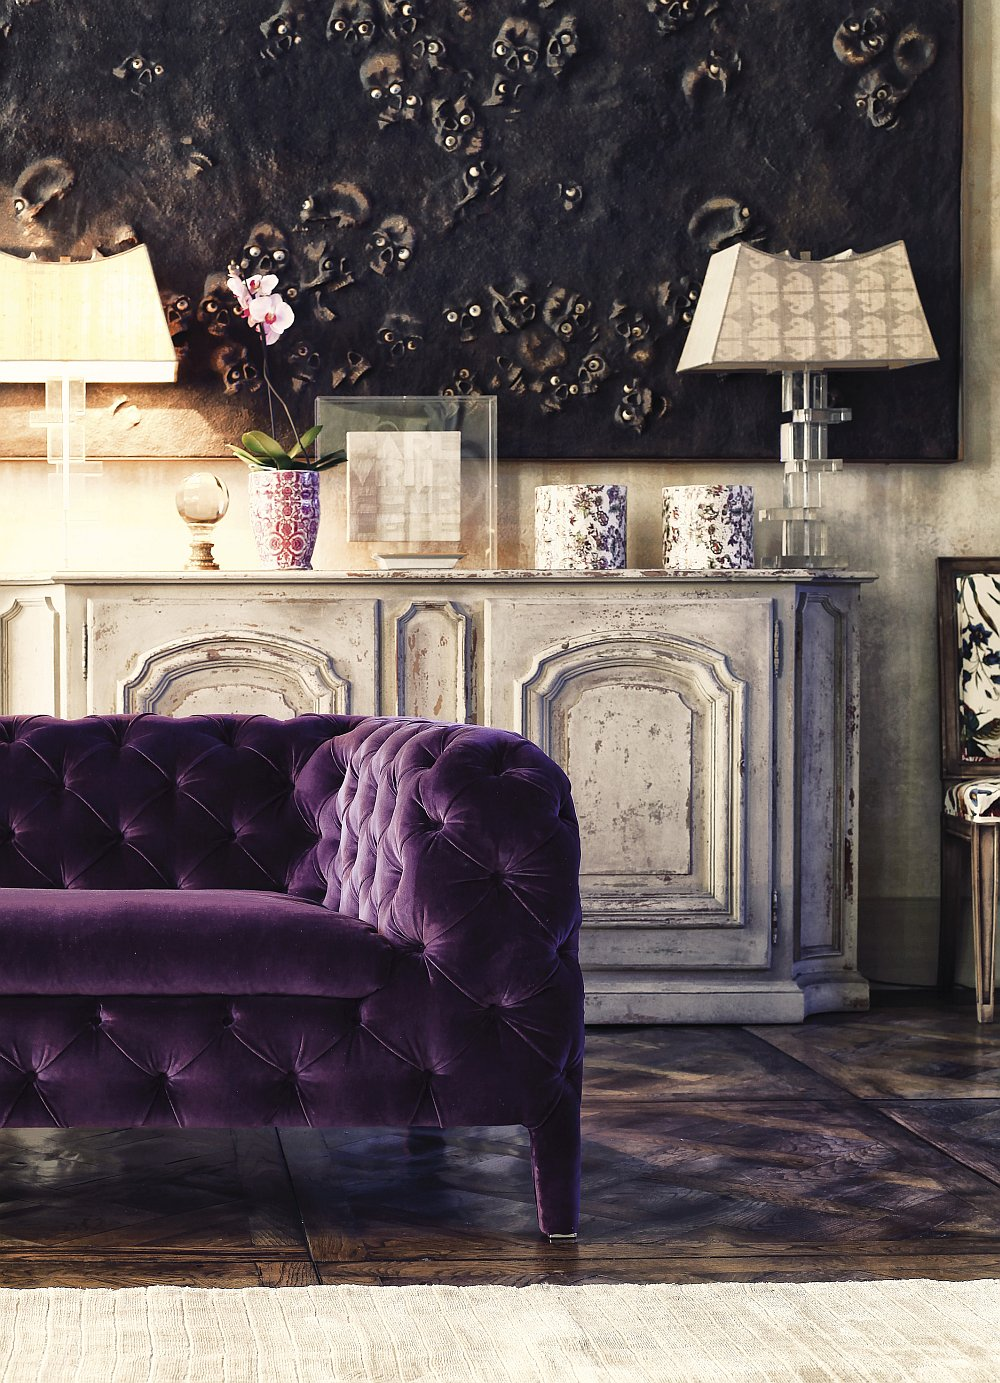 Sophisticated Windsor couch crafted exclusively by hand